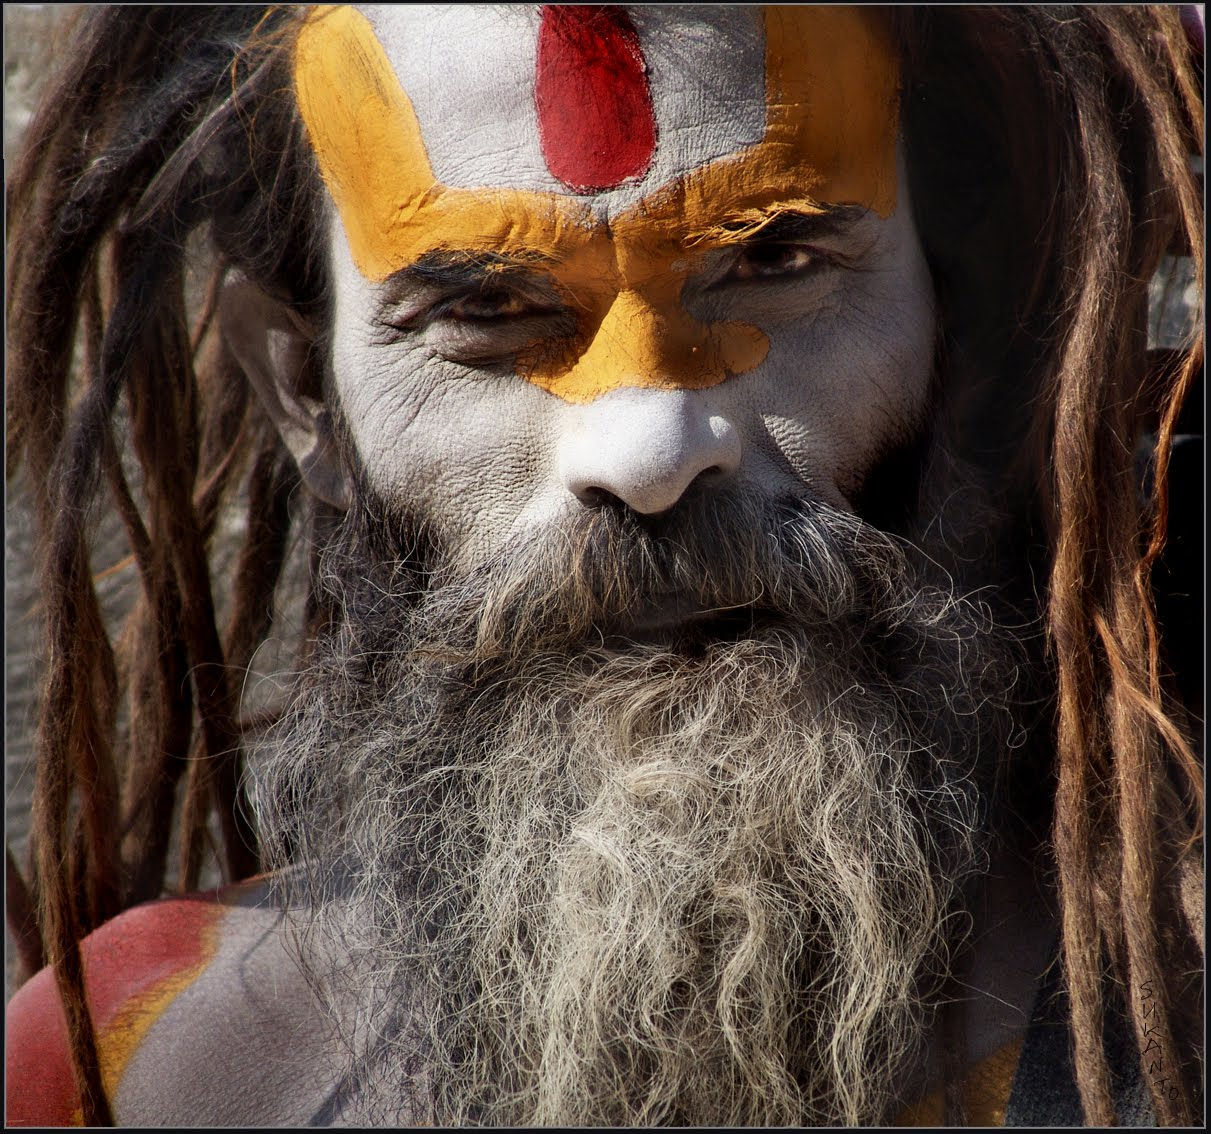 India sadhu Hinduism Sukanto Debnath Posted by Amateur Mommy at 6:35 AM 1 comments